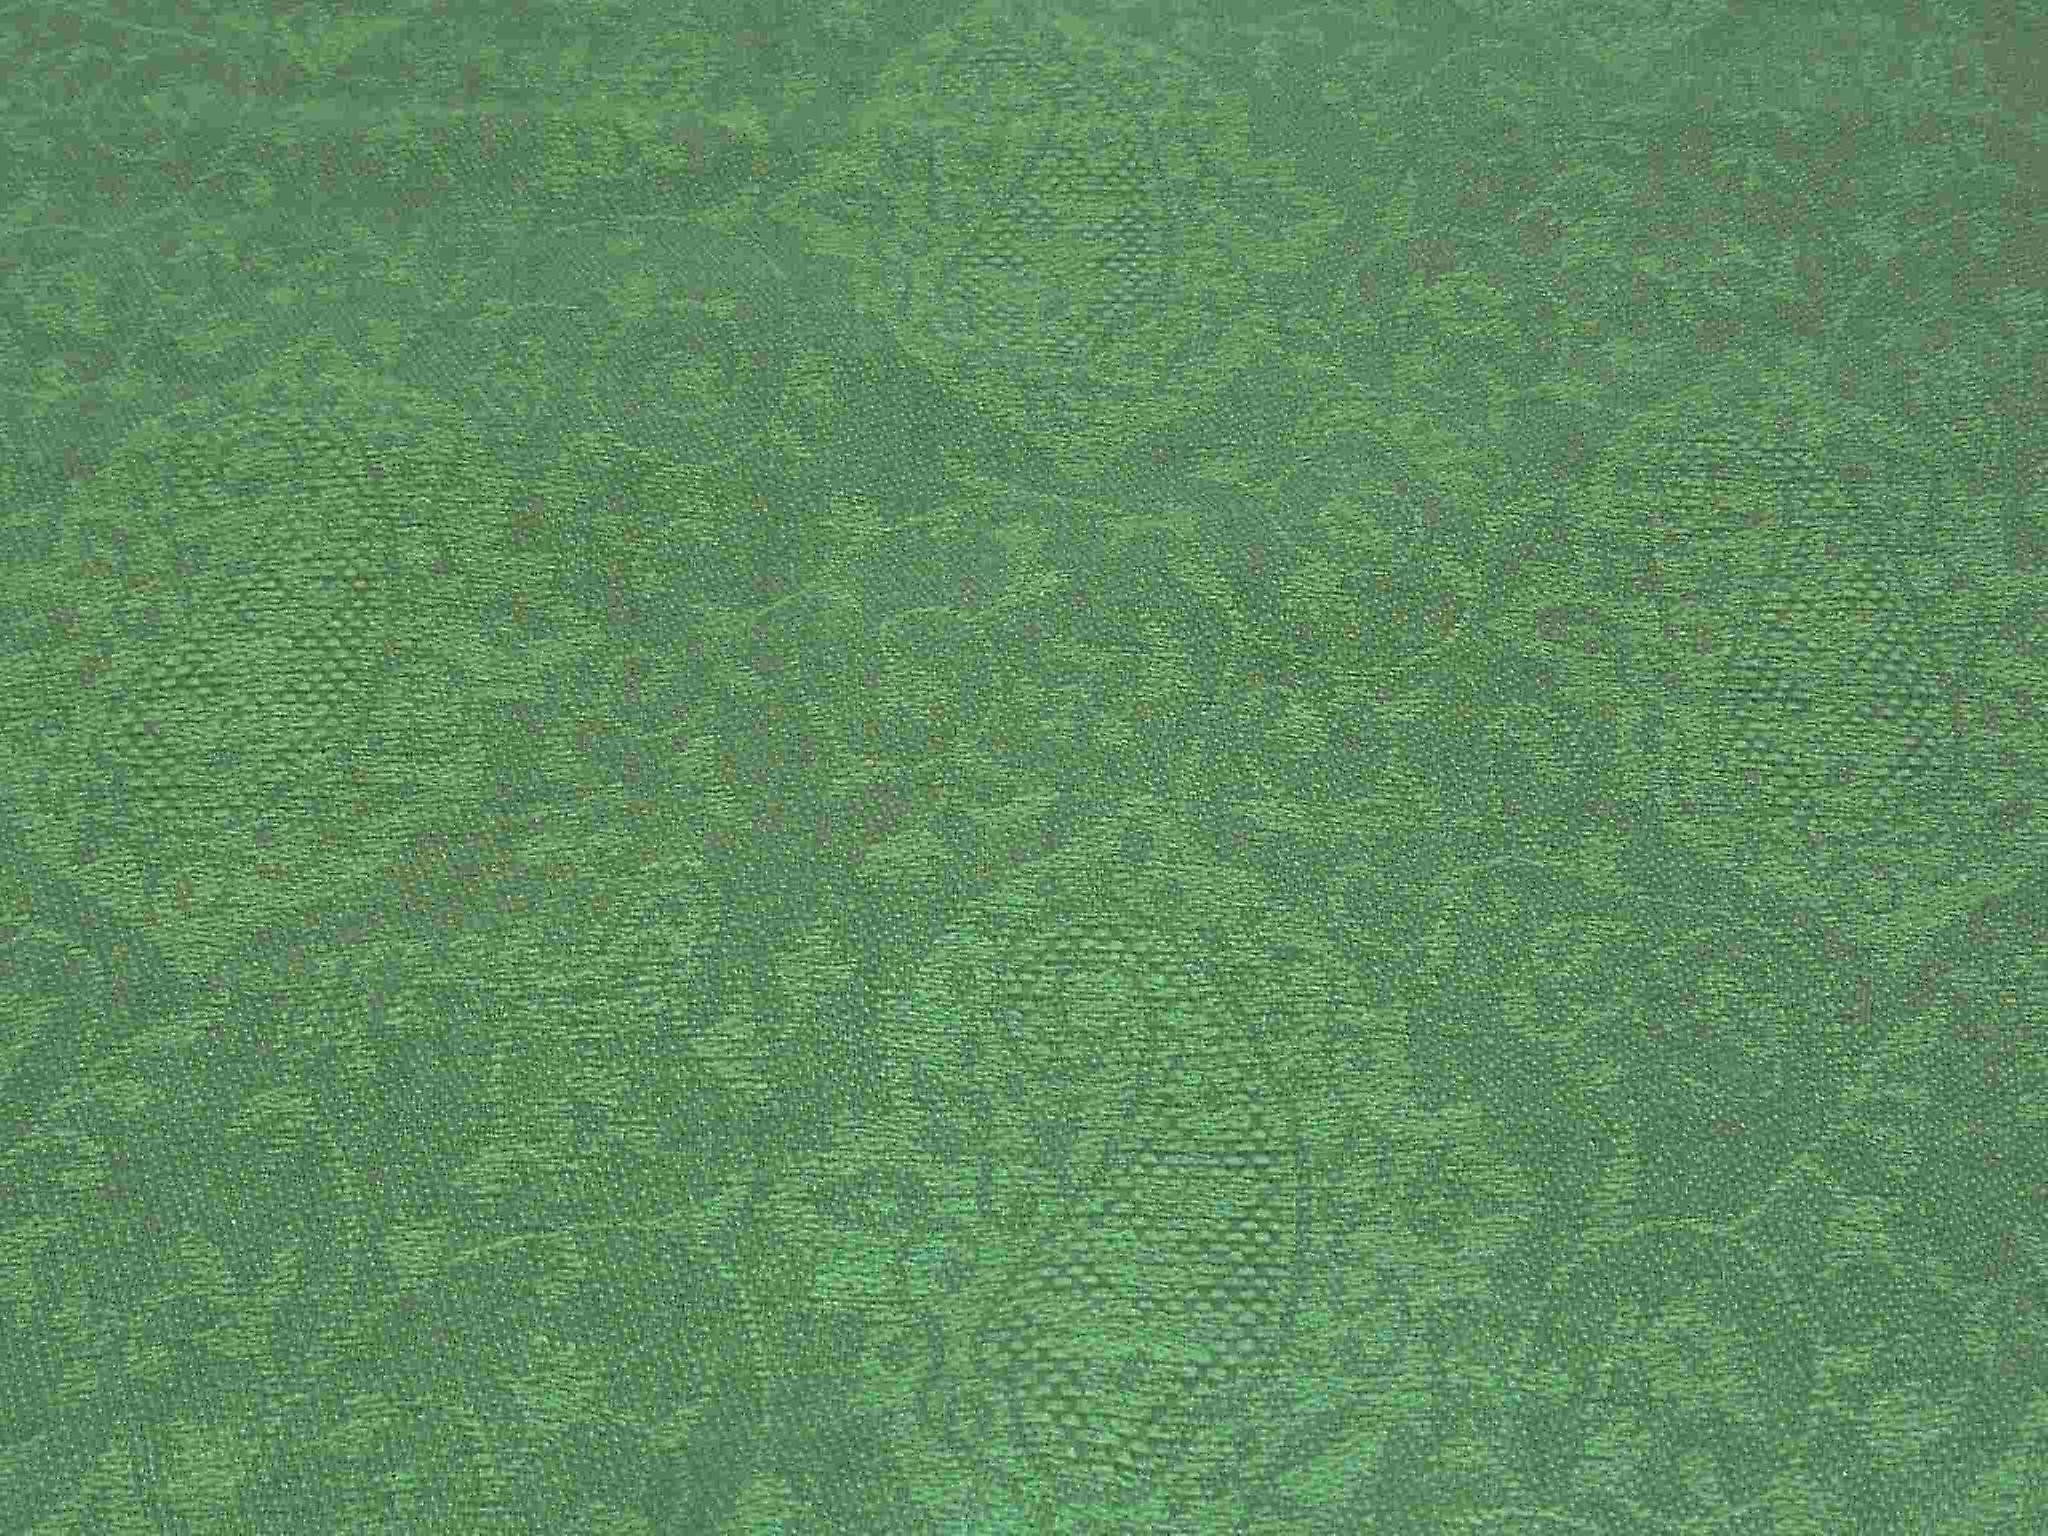 Finest Cashmere Damask Weave Ring Stole in Green by Pashmina & Silk